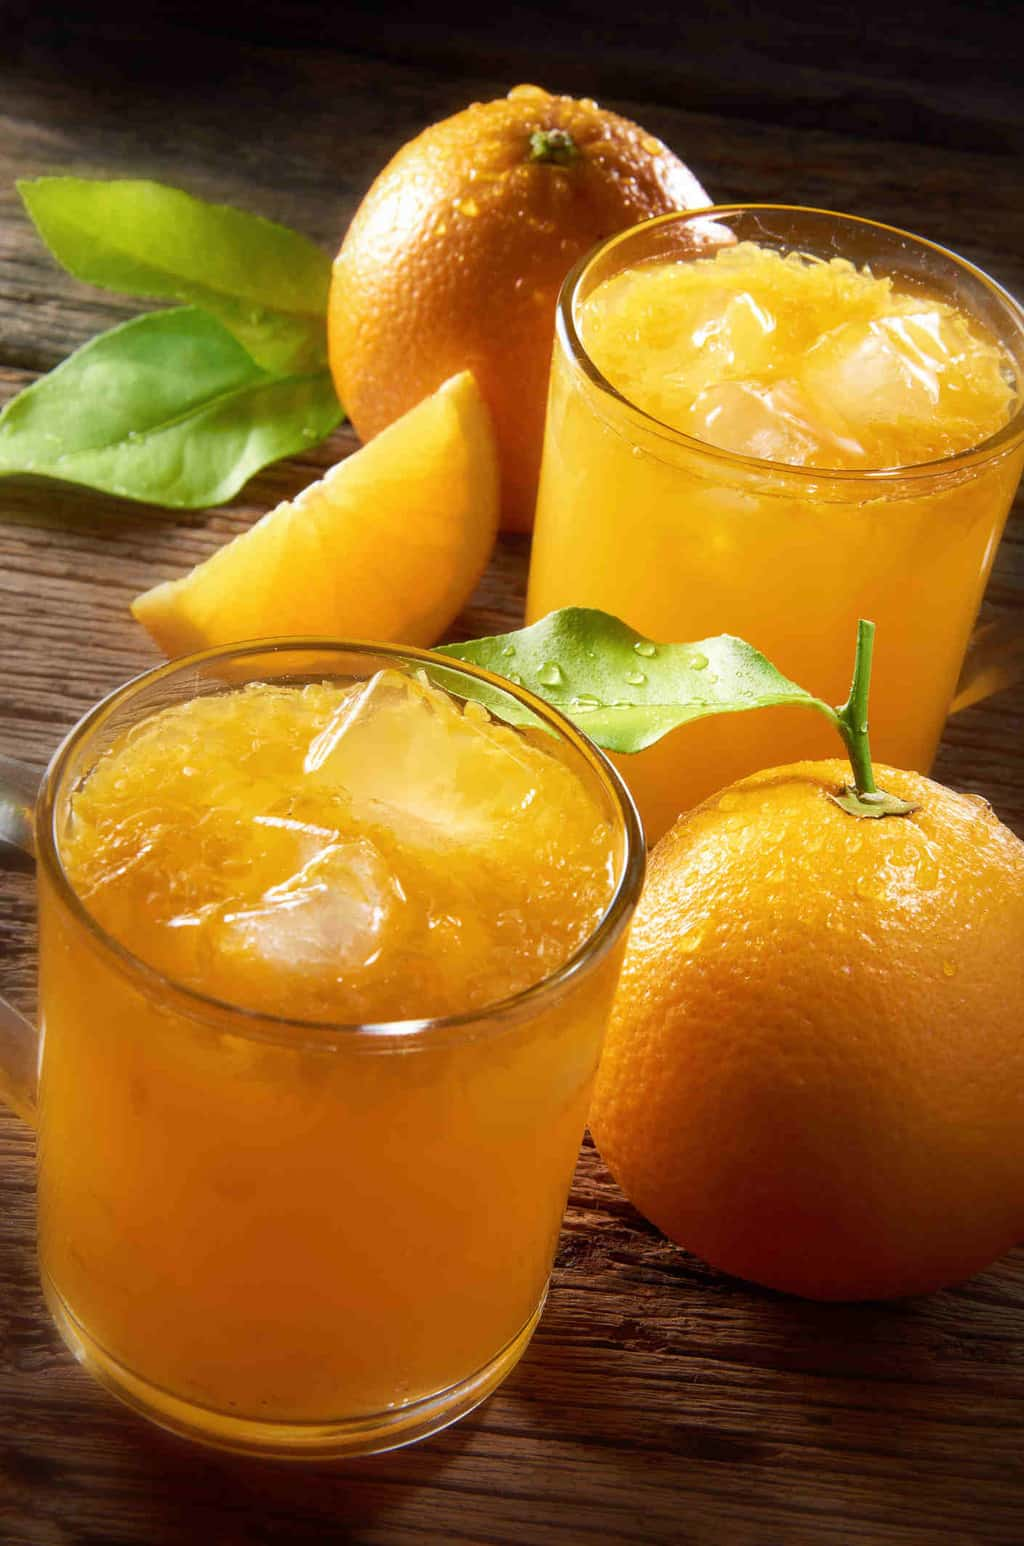 Orange juice lowers inflammation and improves thinking